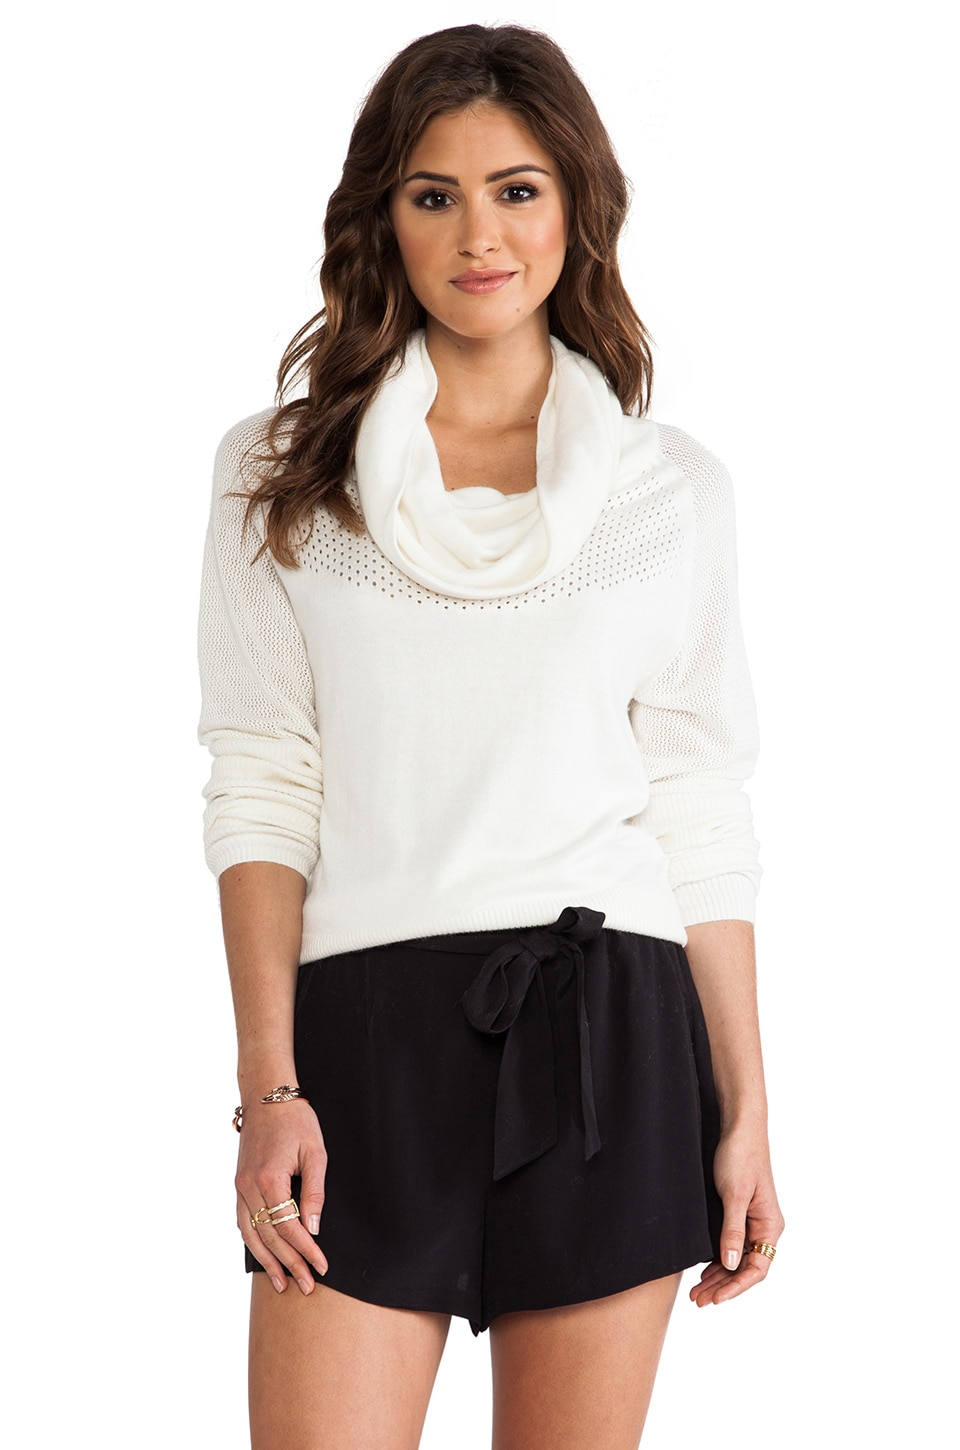 Catherine Malandrino Abeo Turtleneck Sweater in Ivory